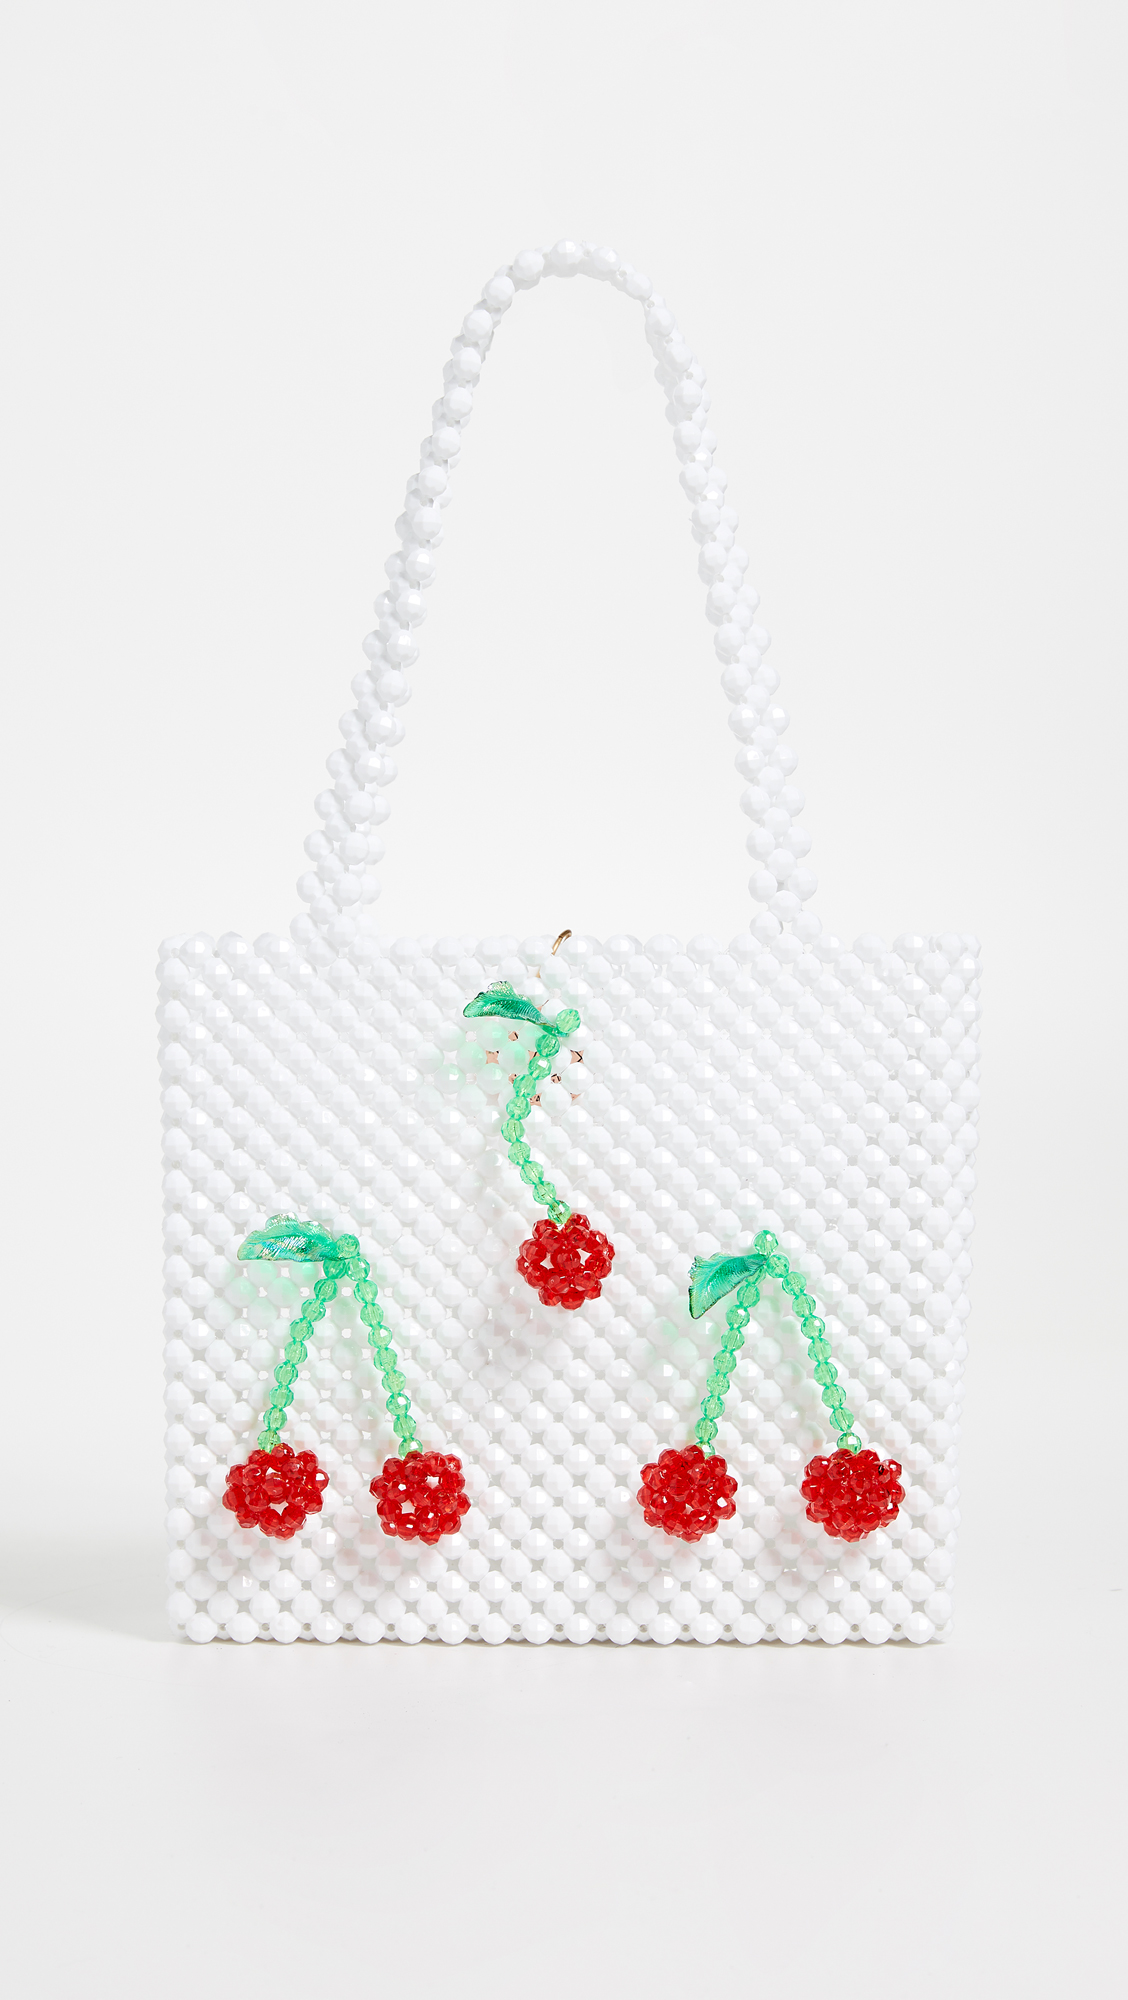 Super Cute Woven Beaded Bags by Susan Alexandra - Ma Cherie Bag